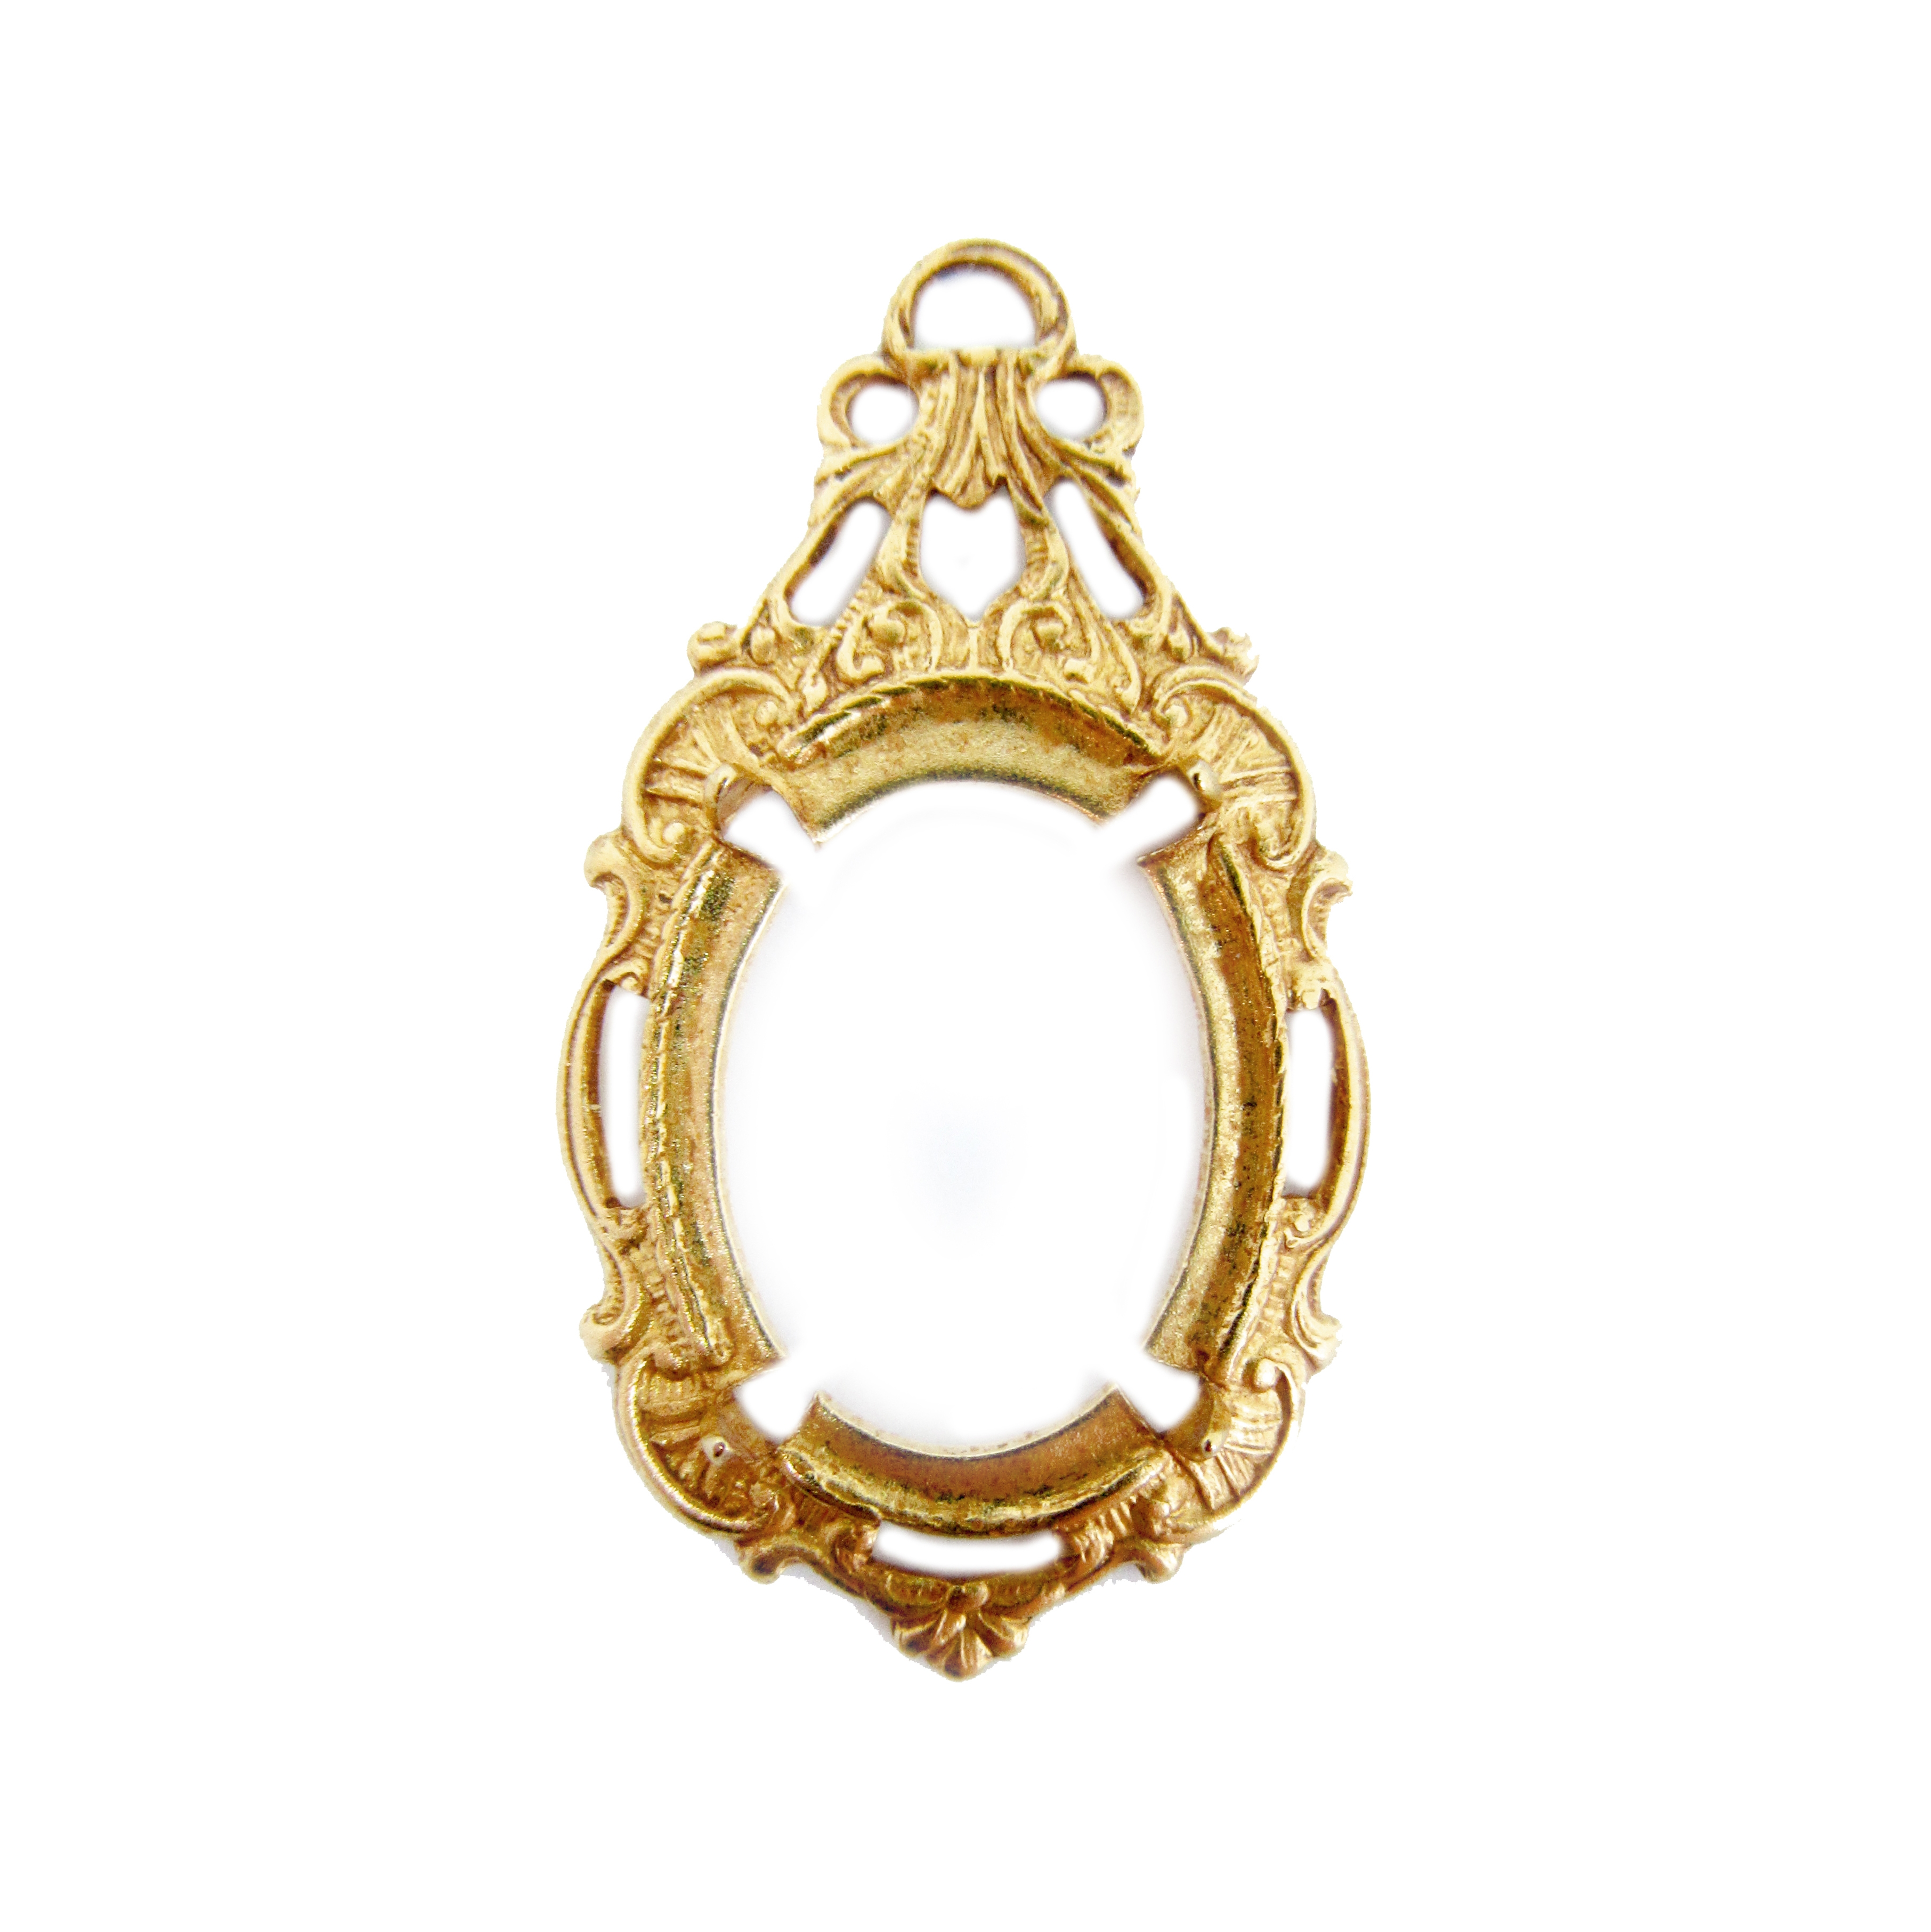 victorian style bezel, pendent design, classic gold plated, brass, victorian, bezel, pendent, 18x13mm, backless bezel, mount, us made, nickel free, B'sue Boutiques, vintage supplies, jewelry supplies, jewelry making, jewelry findings, 04995